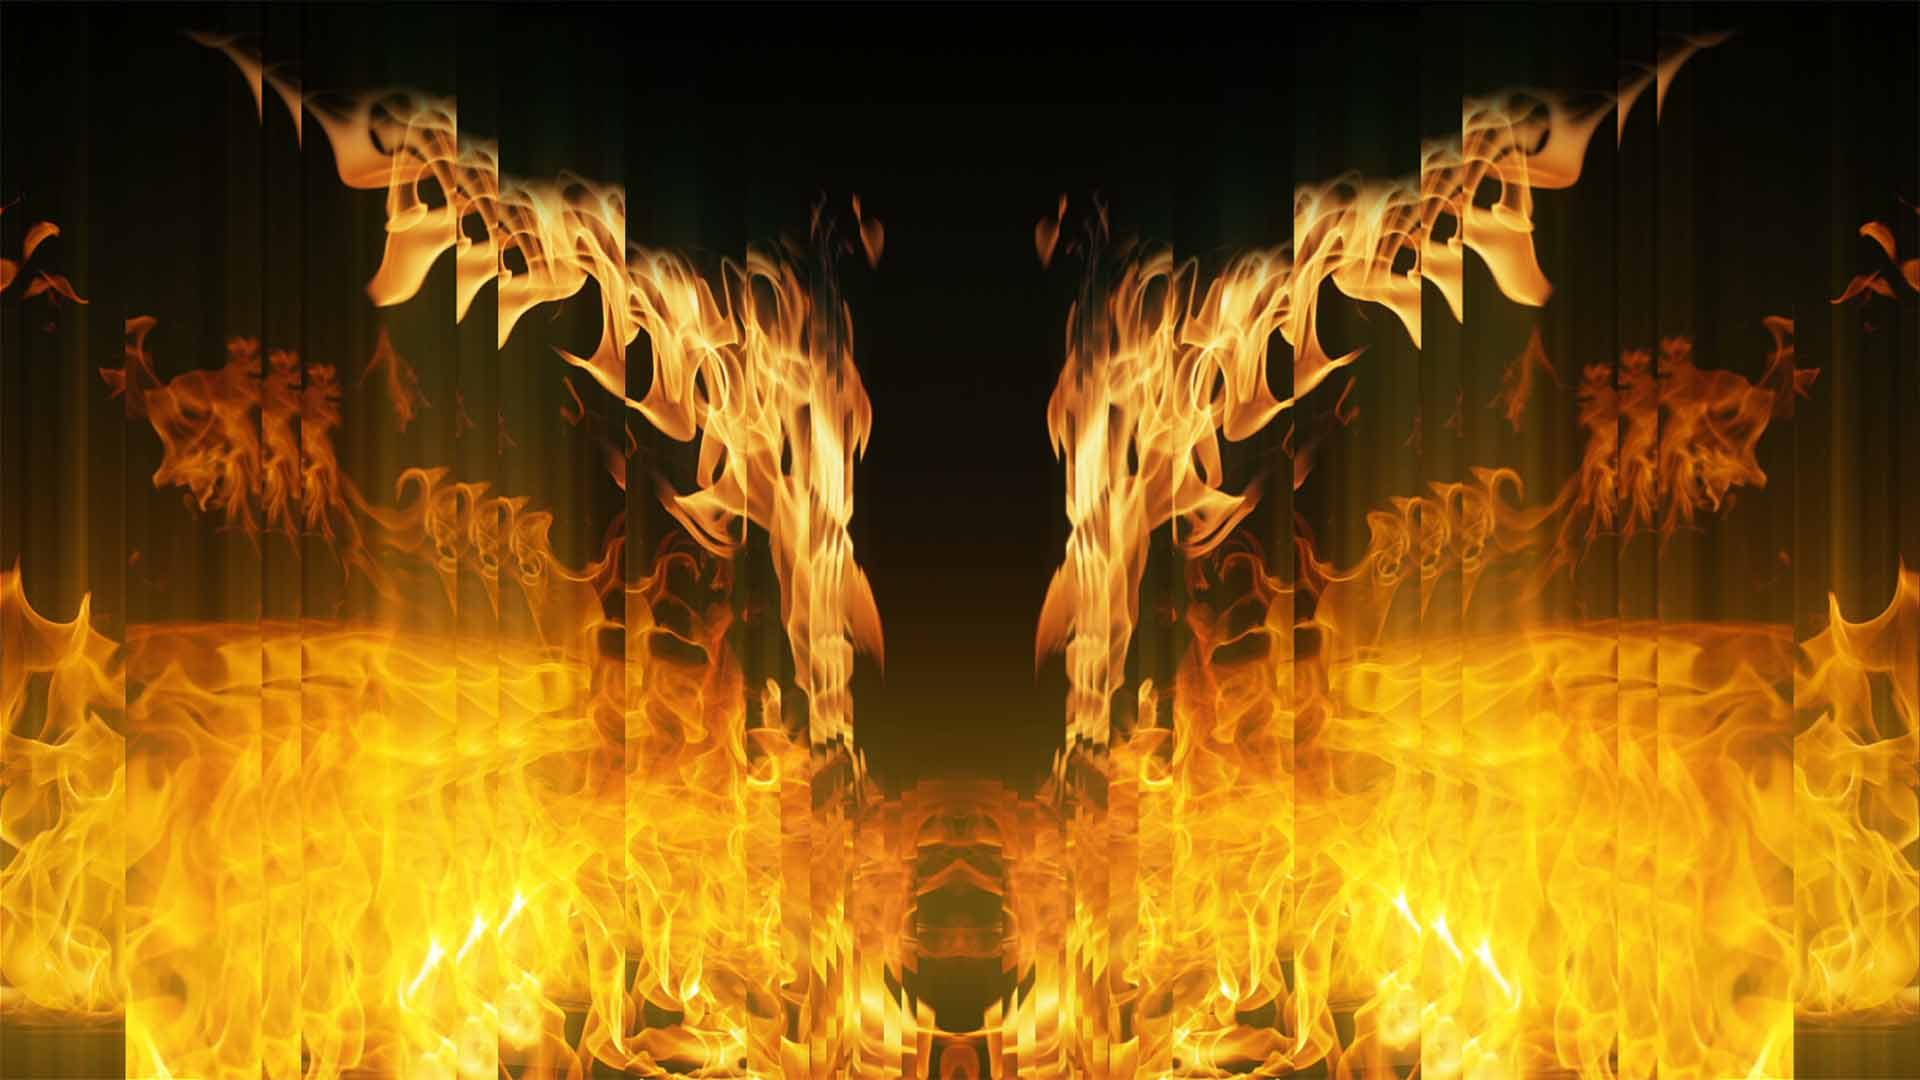 Abstract Fire Flame Video Background VJ Loop